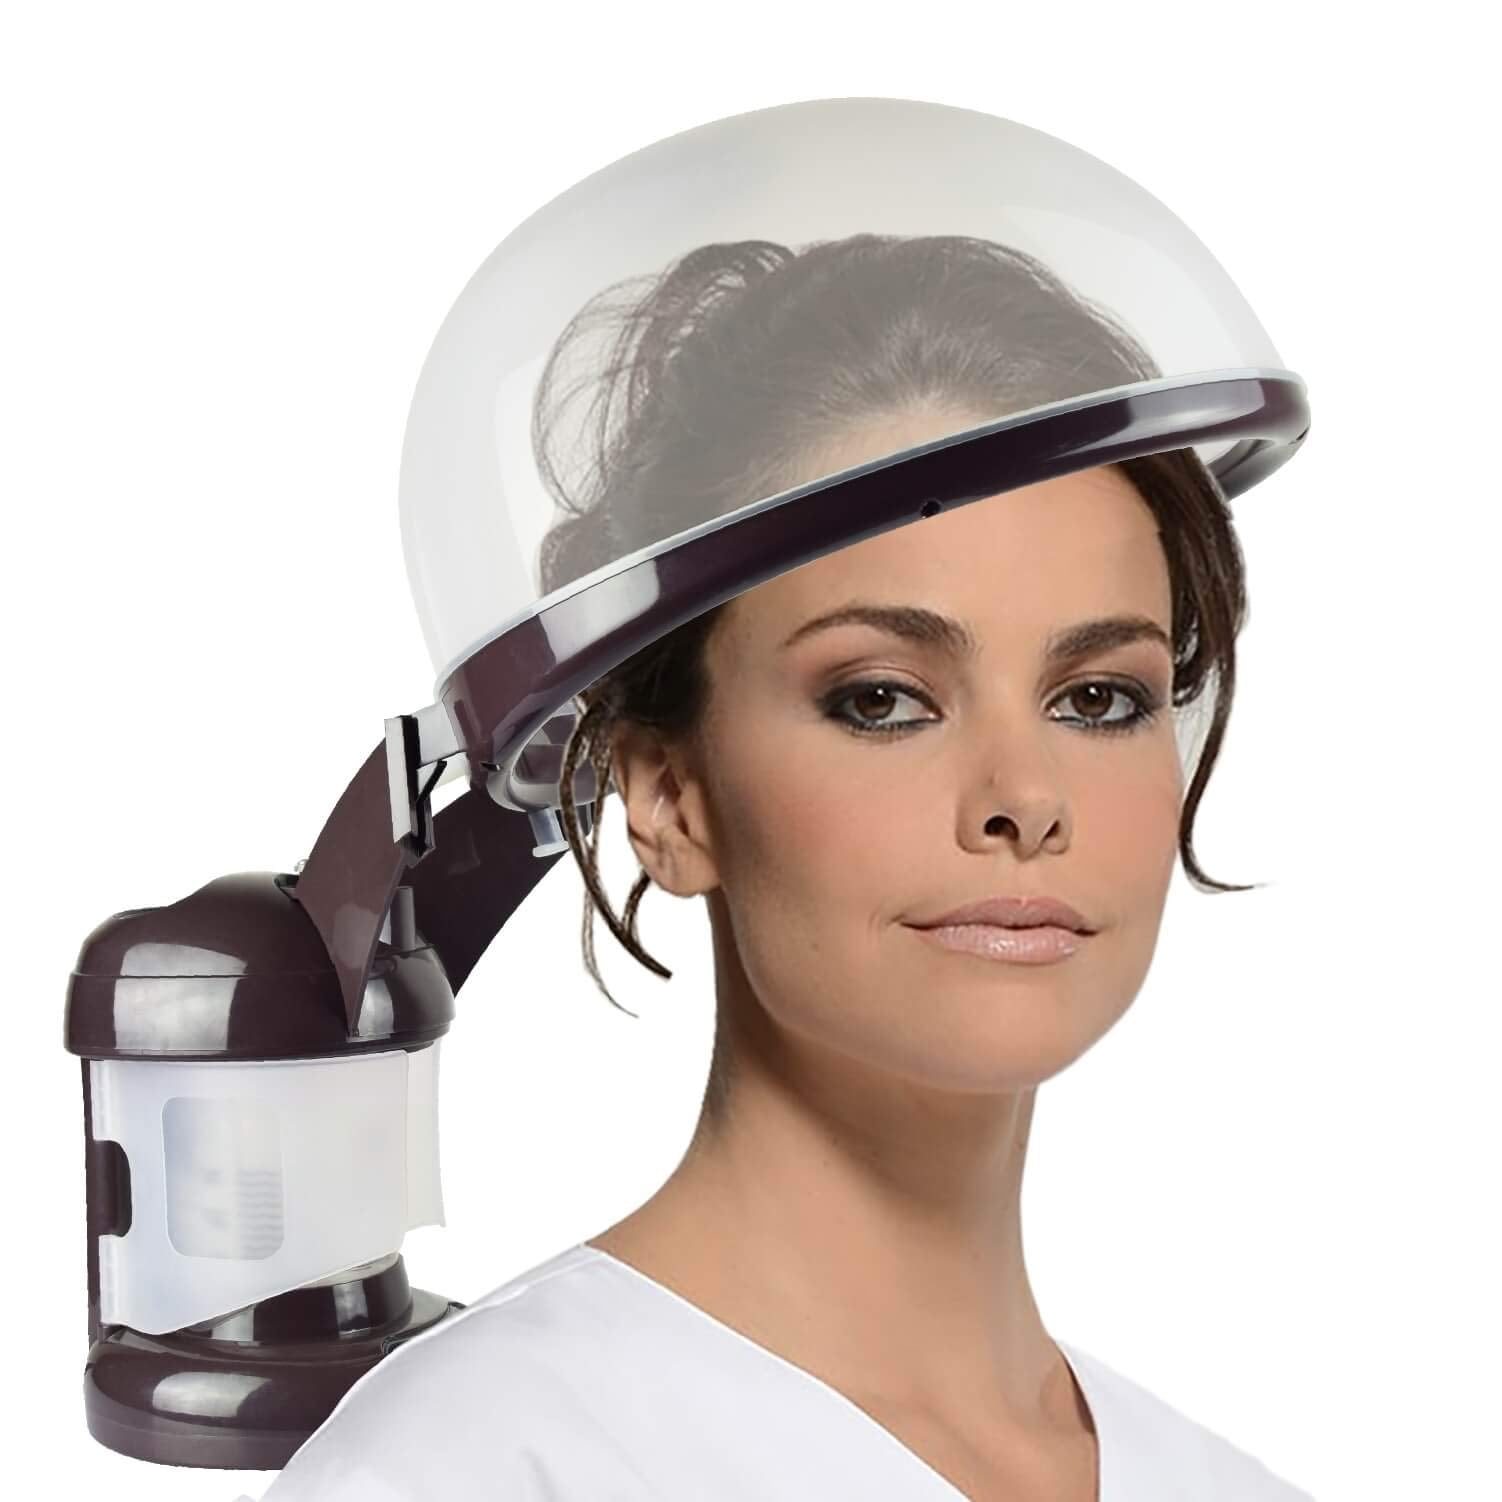 Hair Steamer Kingsteam 2 in 1 Ozone Facial Steamer, Design for Personal Care Use At Home or Salon (Coffee) - mroutfit